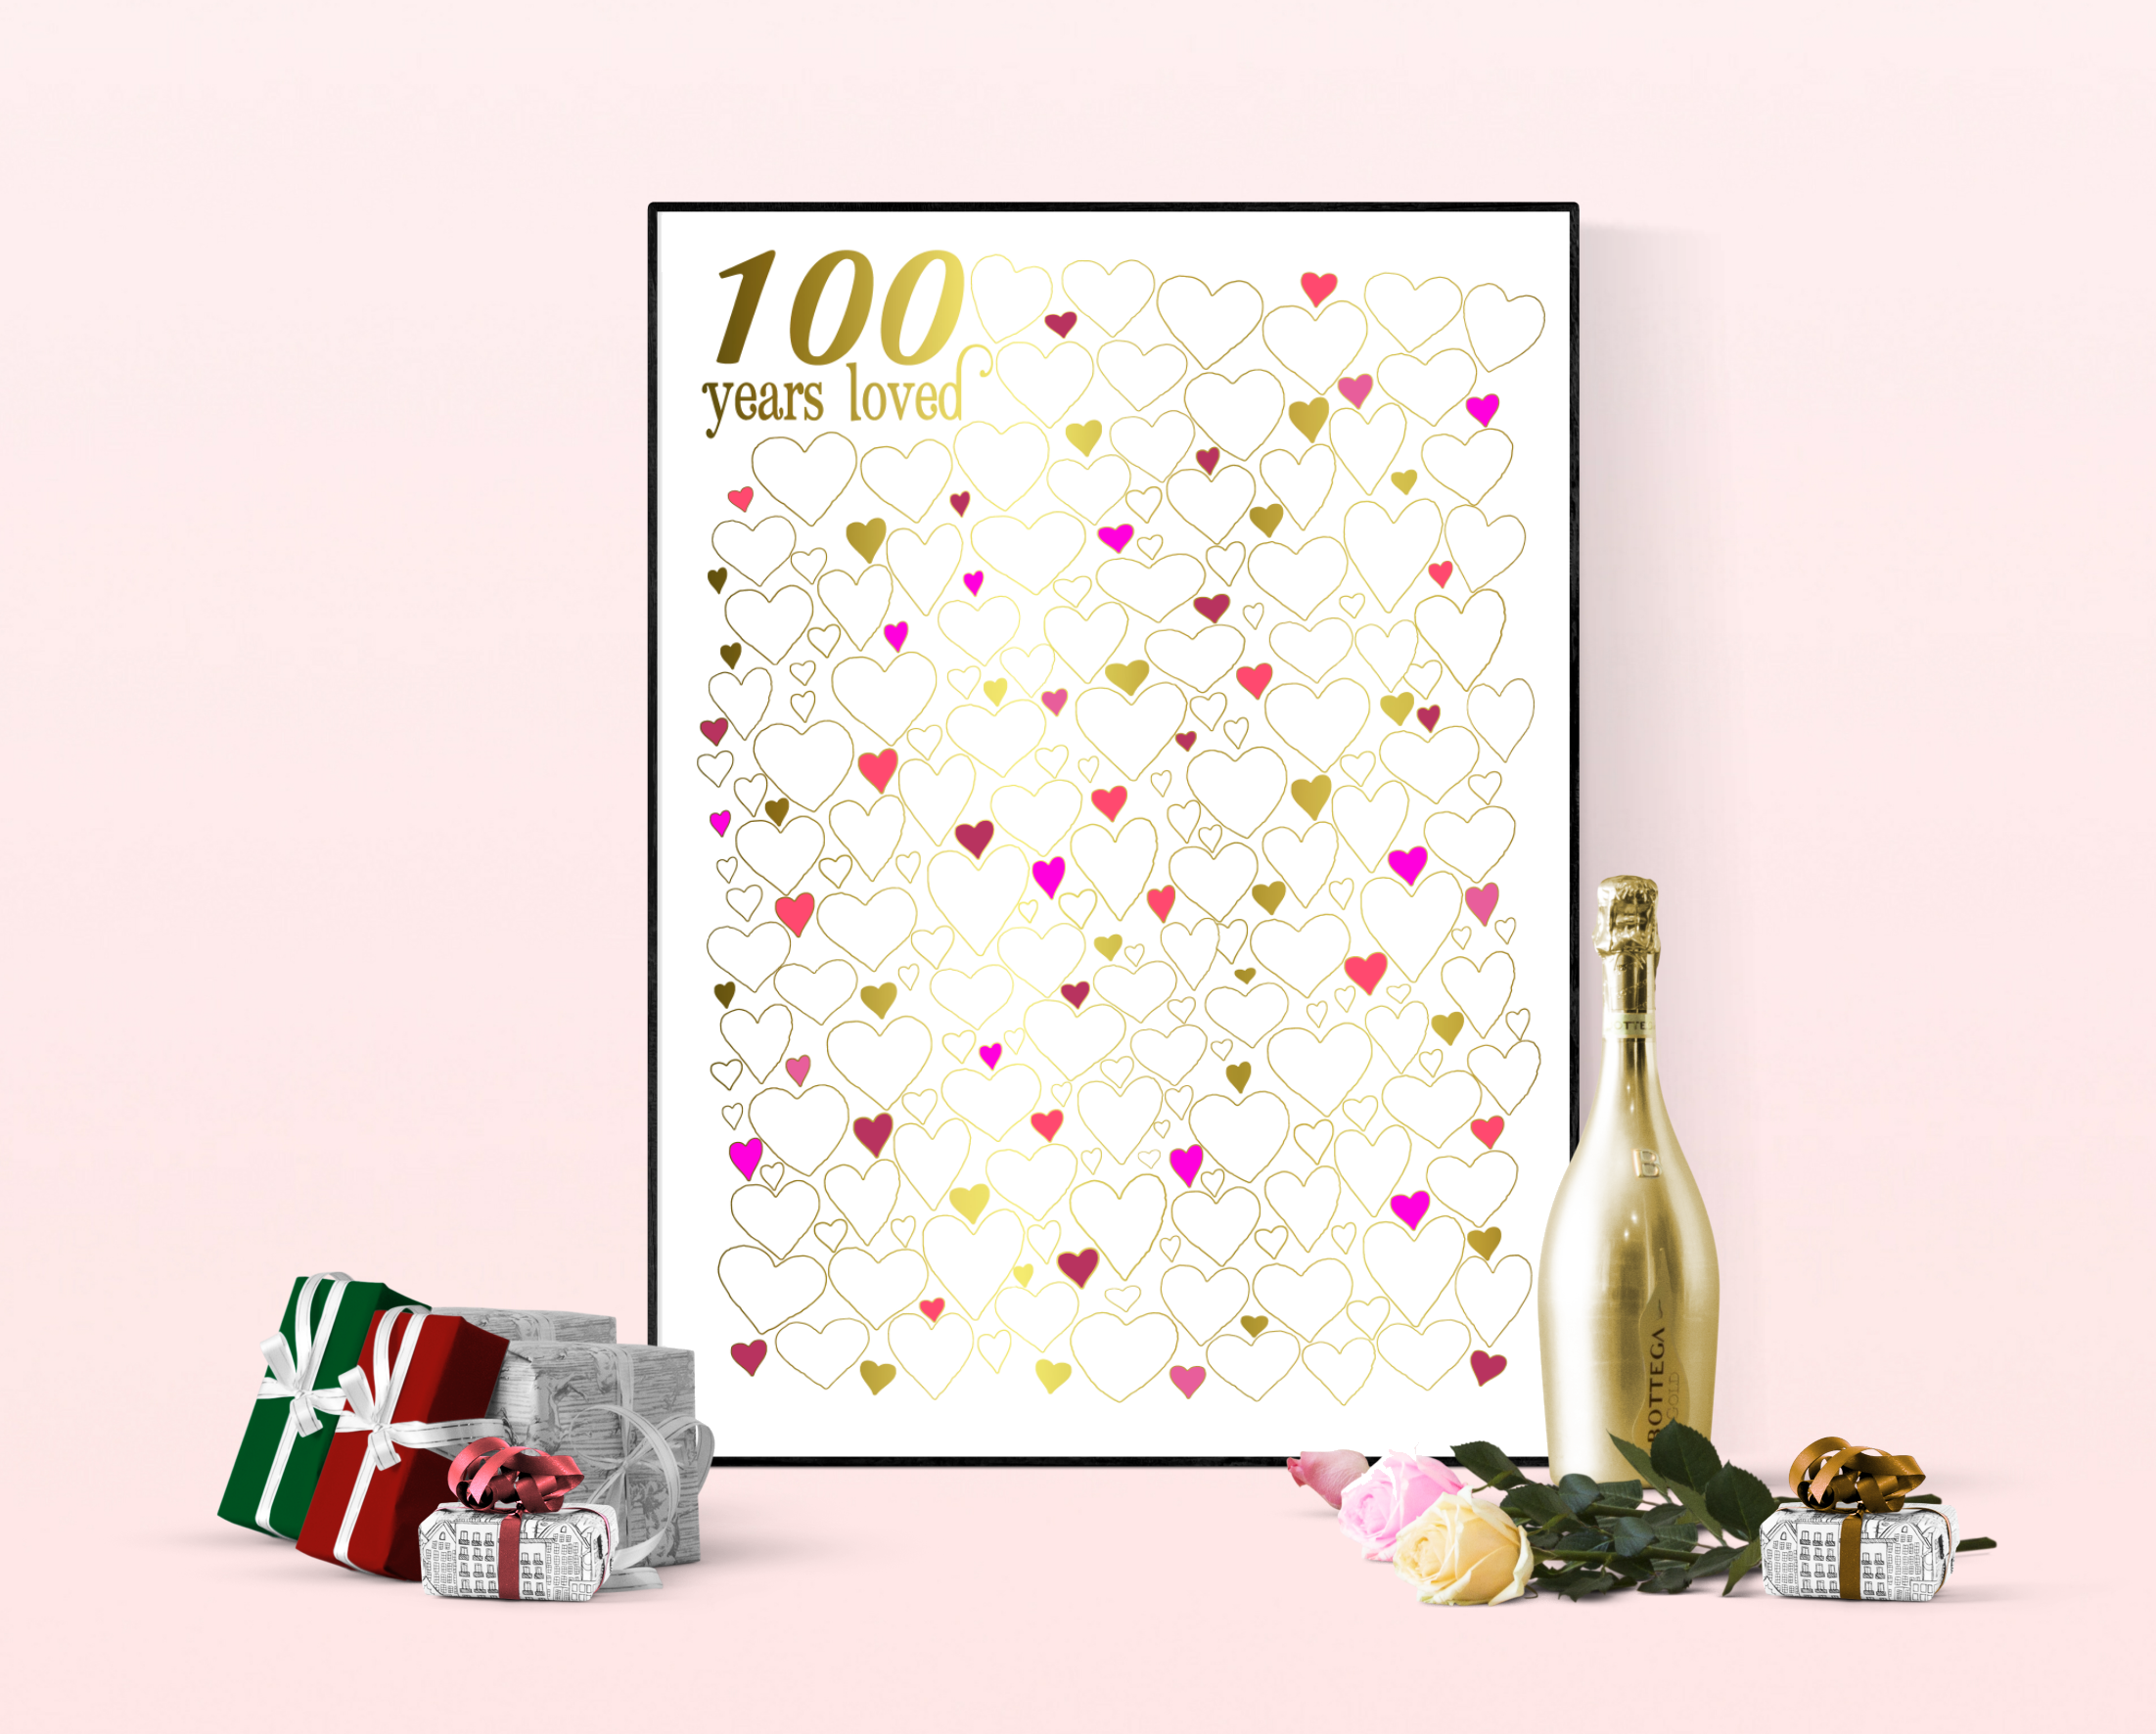 100 years loved poster - 100th birthday gift idea www.fromtherookery.com